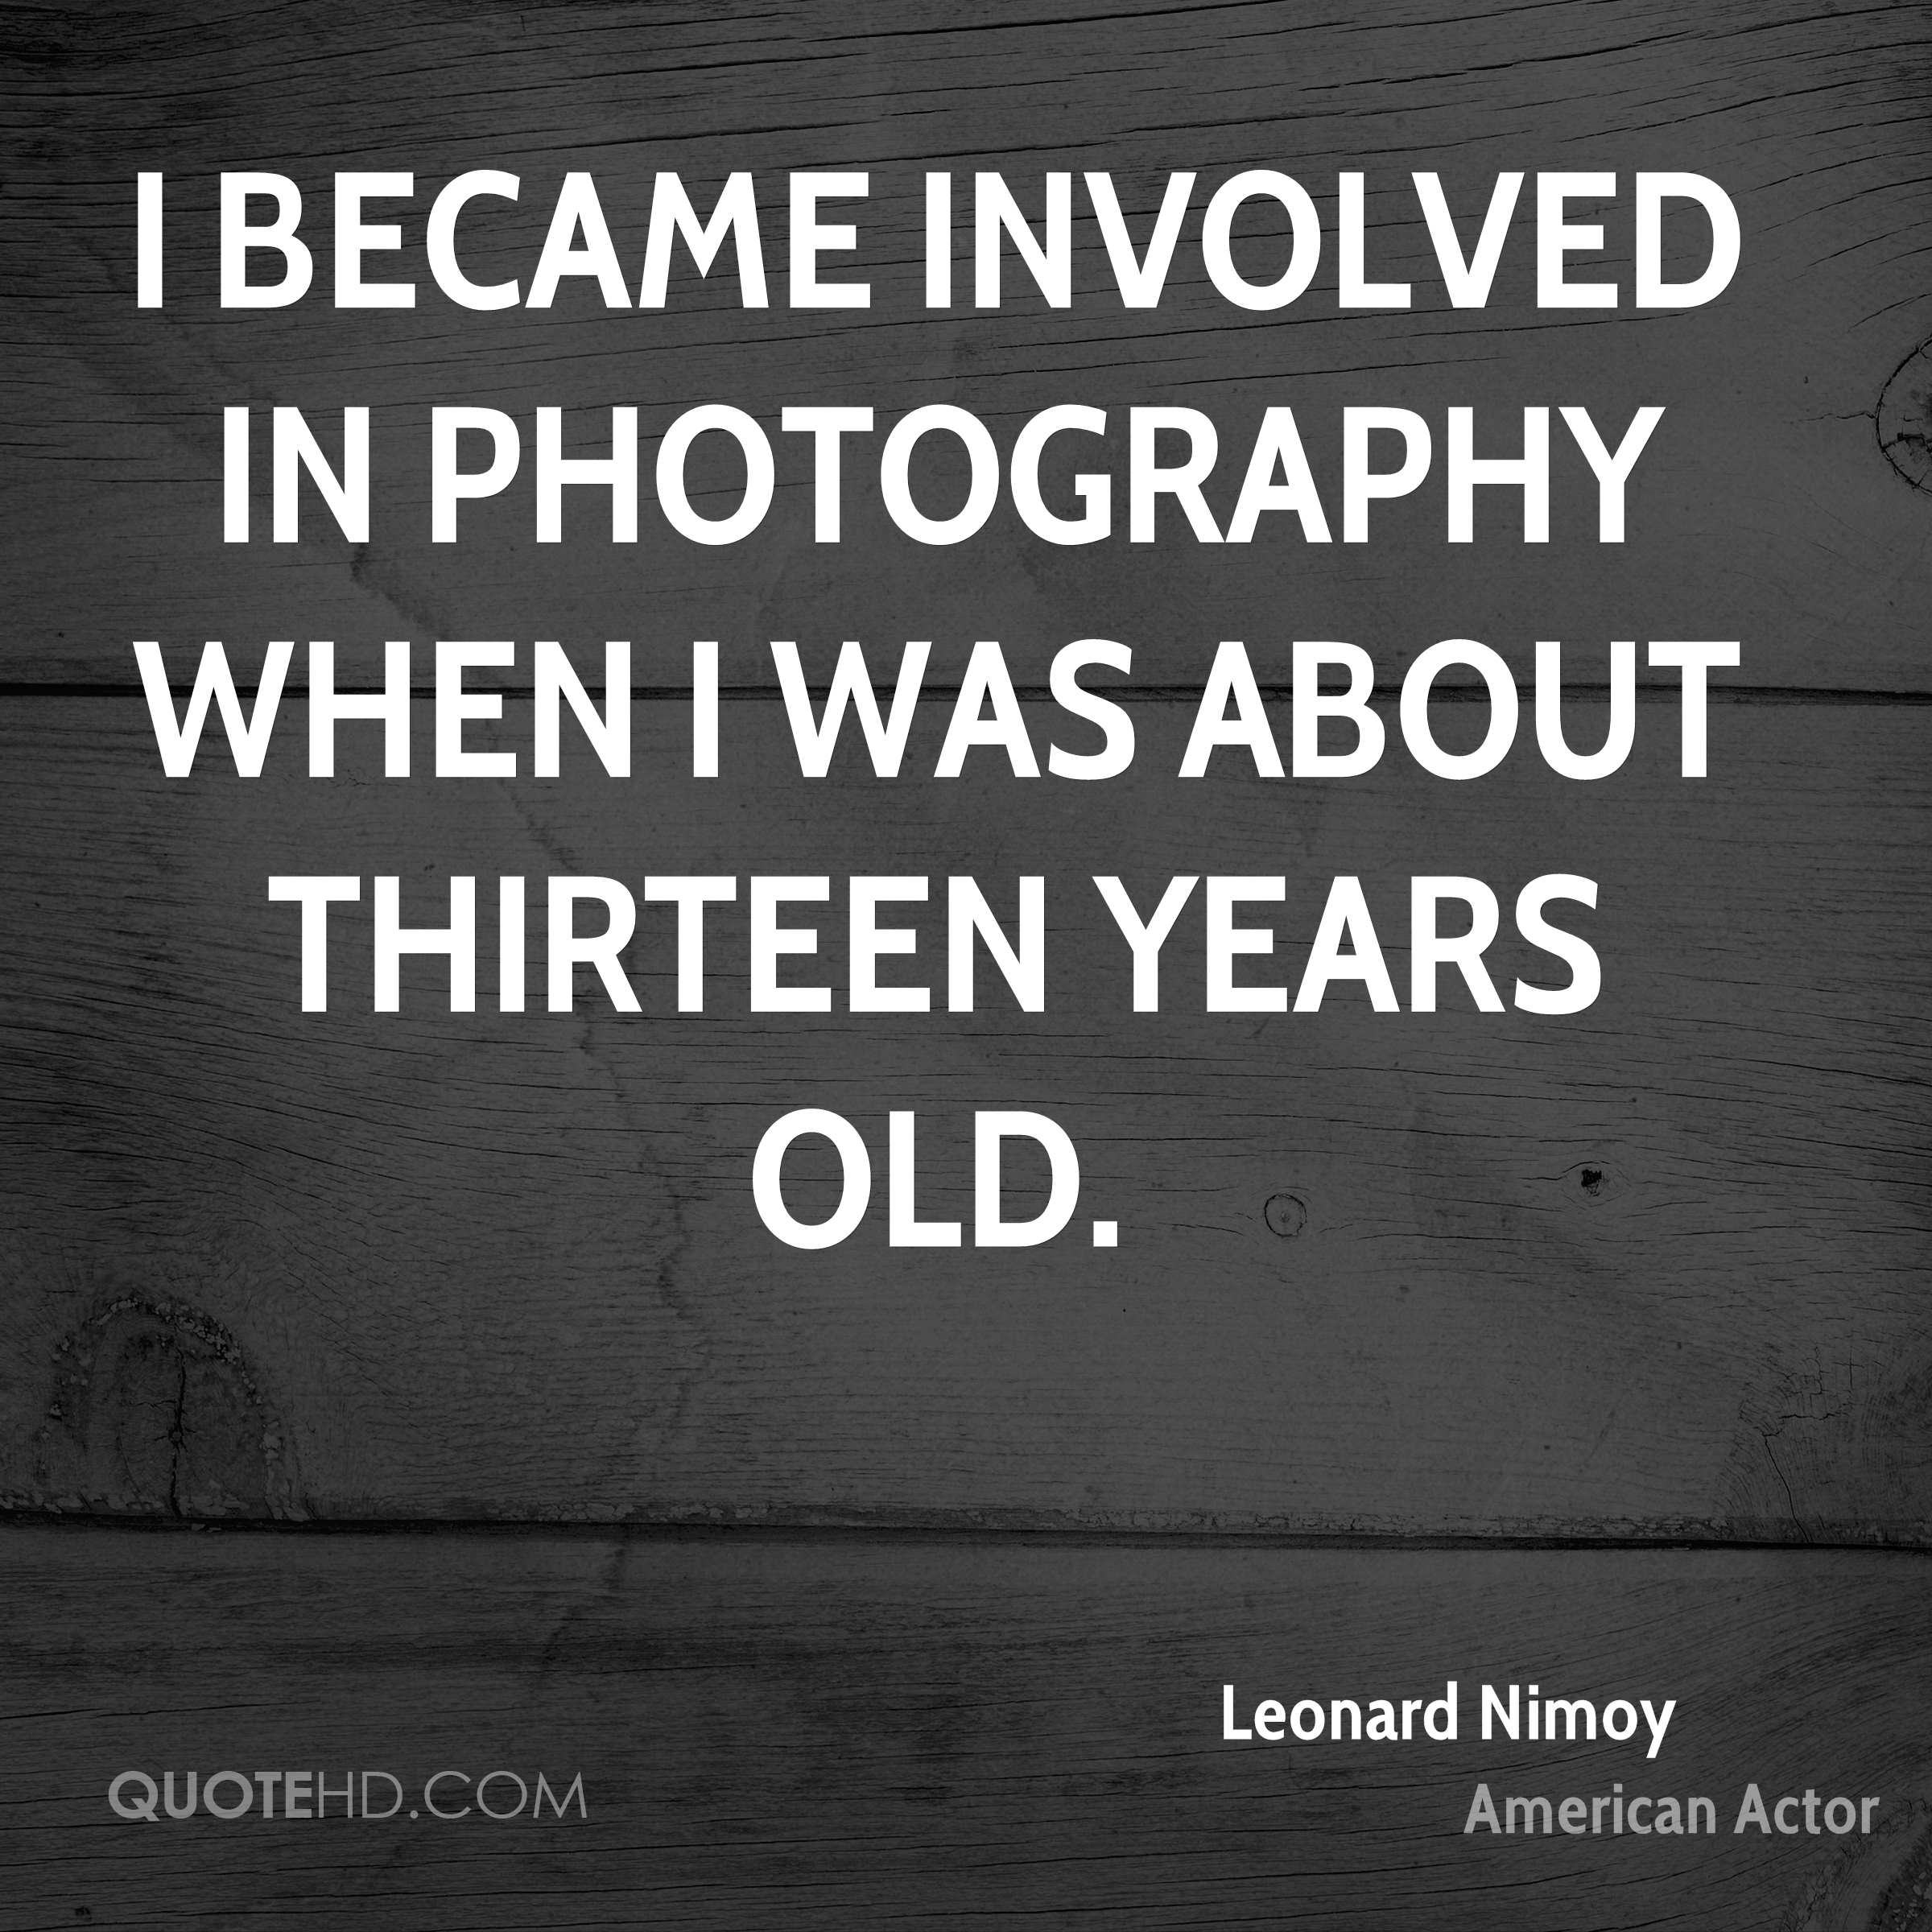 I became involved in photography when I was about thirteen years old.